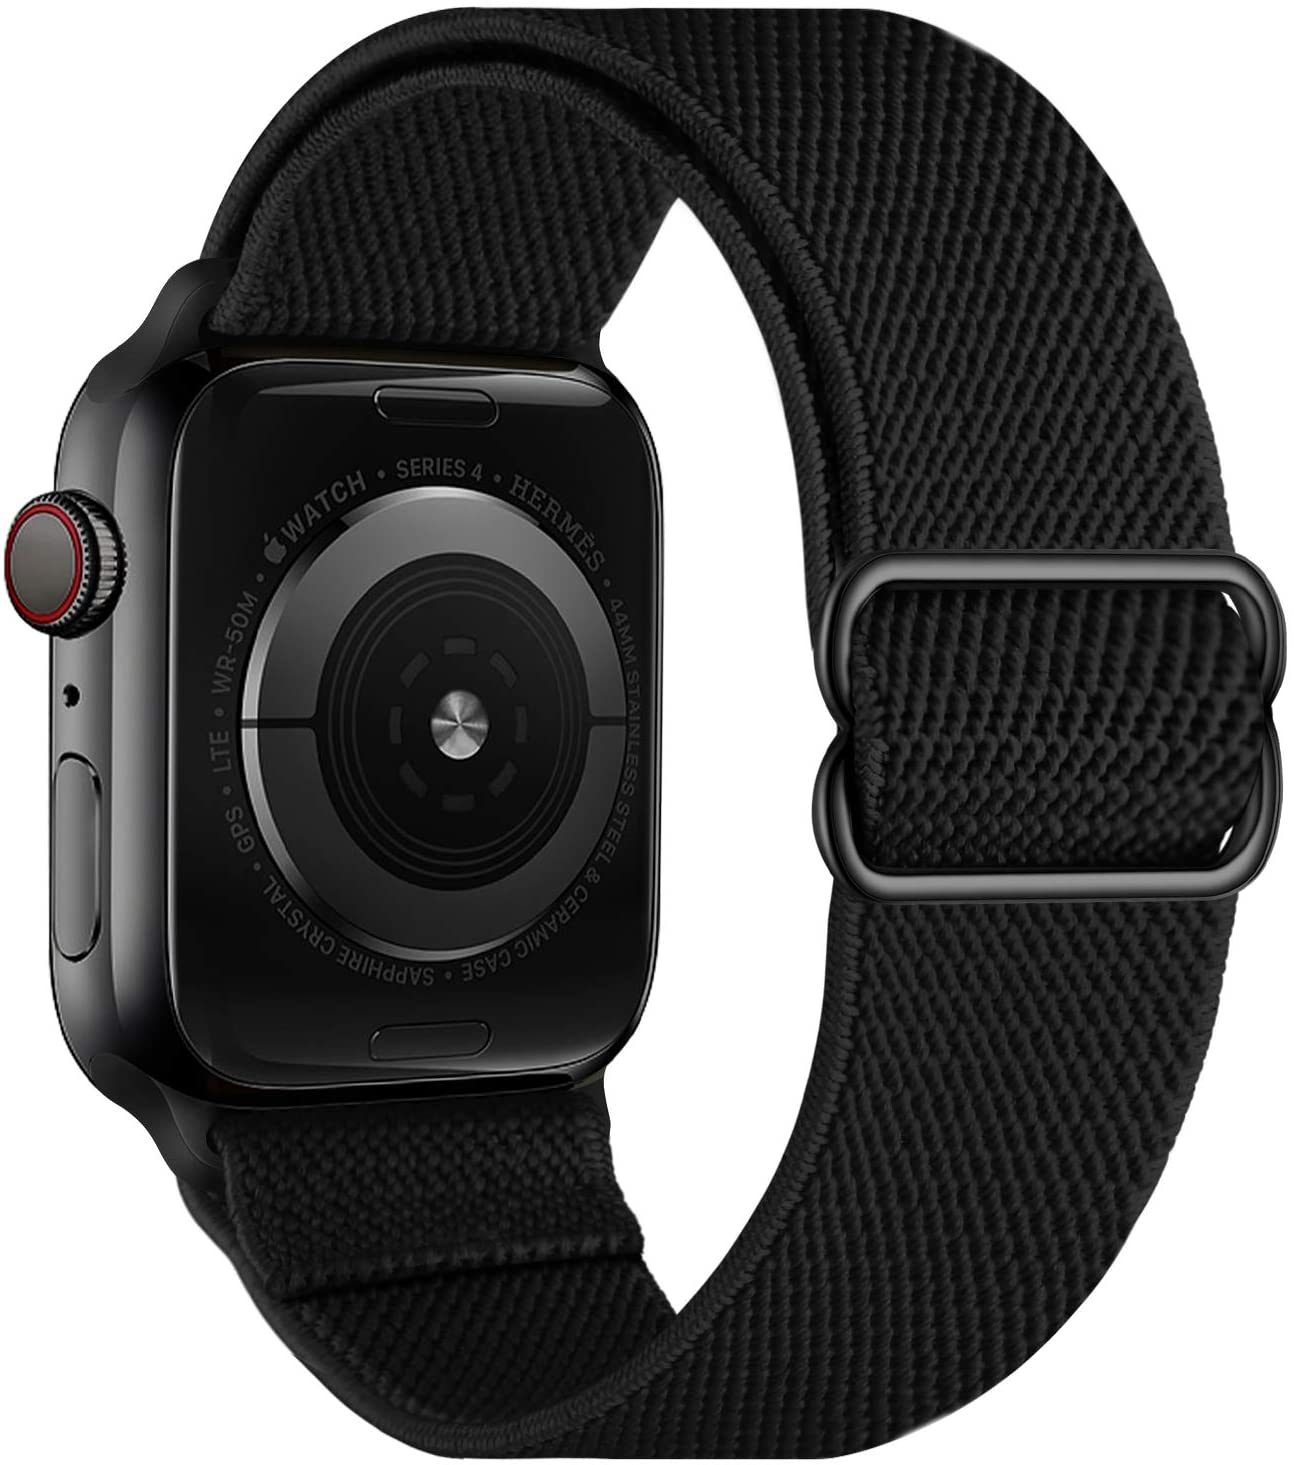 OXWALLEN Stretchy Nylon Solo Loop Compatible with XL Apple Watch Bands 42mm 44mm, Adjustable Elastic Braided Stretches Sport Women Men Strap for iWatch SE Series 6/5/4/3/2/1,Black